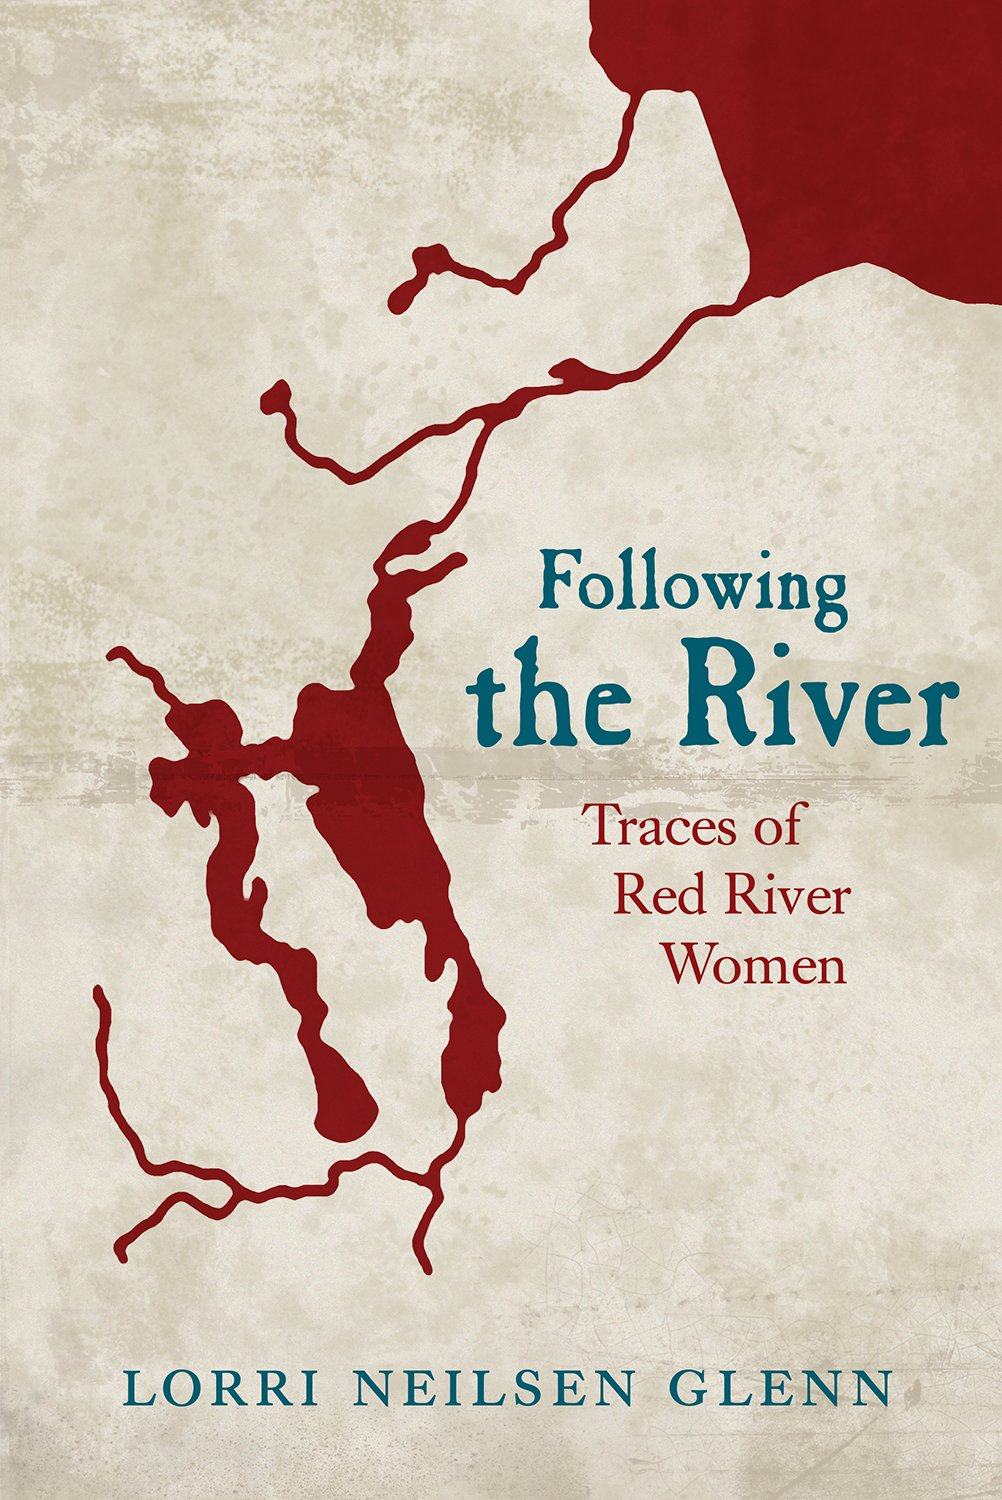 Following the River Traces of Red River Women